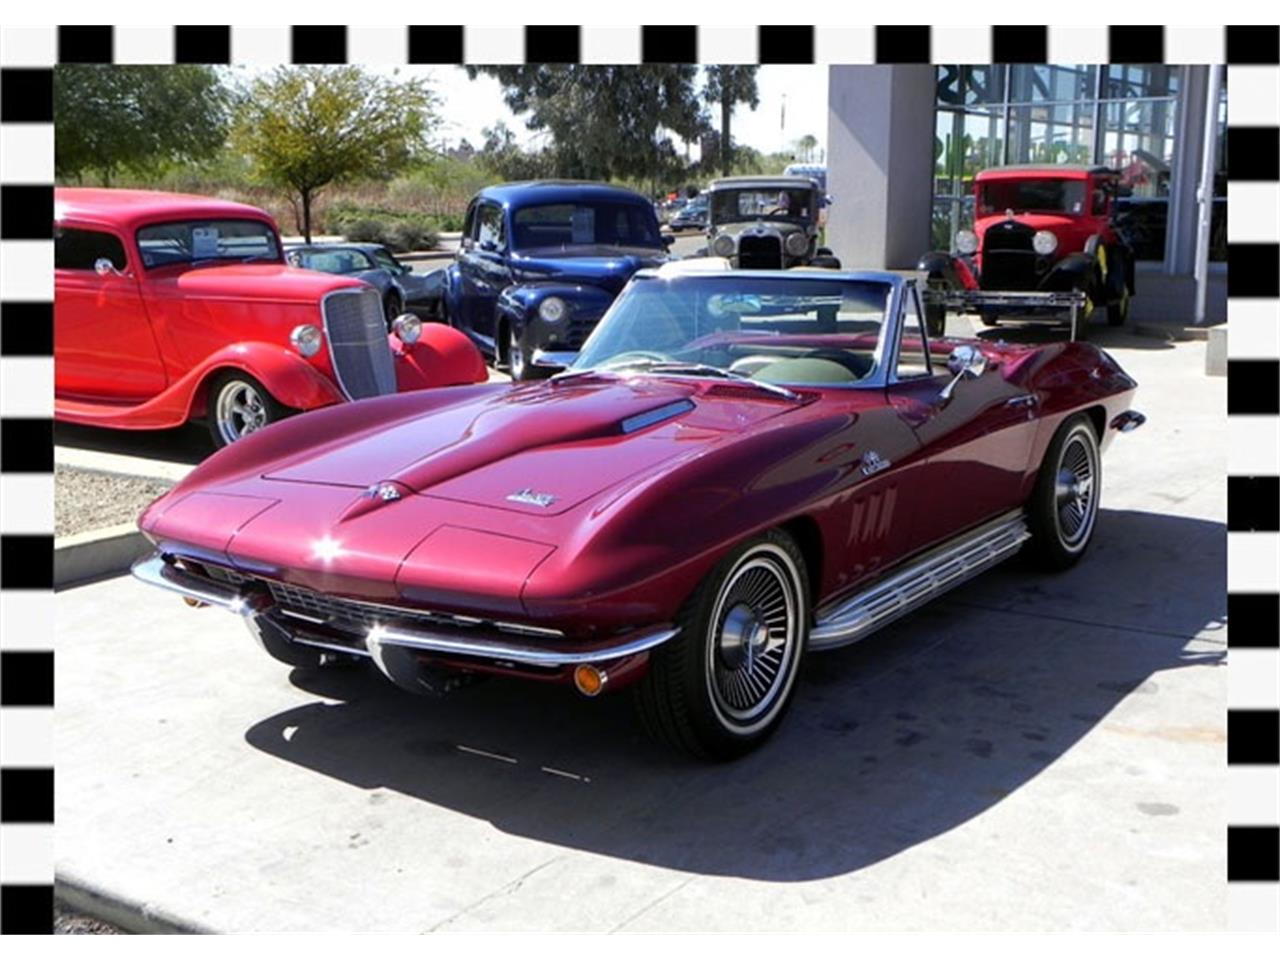 Large Picture of Classic '66 Chevrolet Corvette - $99,900.00 Offered by a Private Seller - FLDD